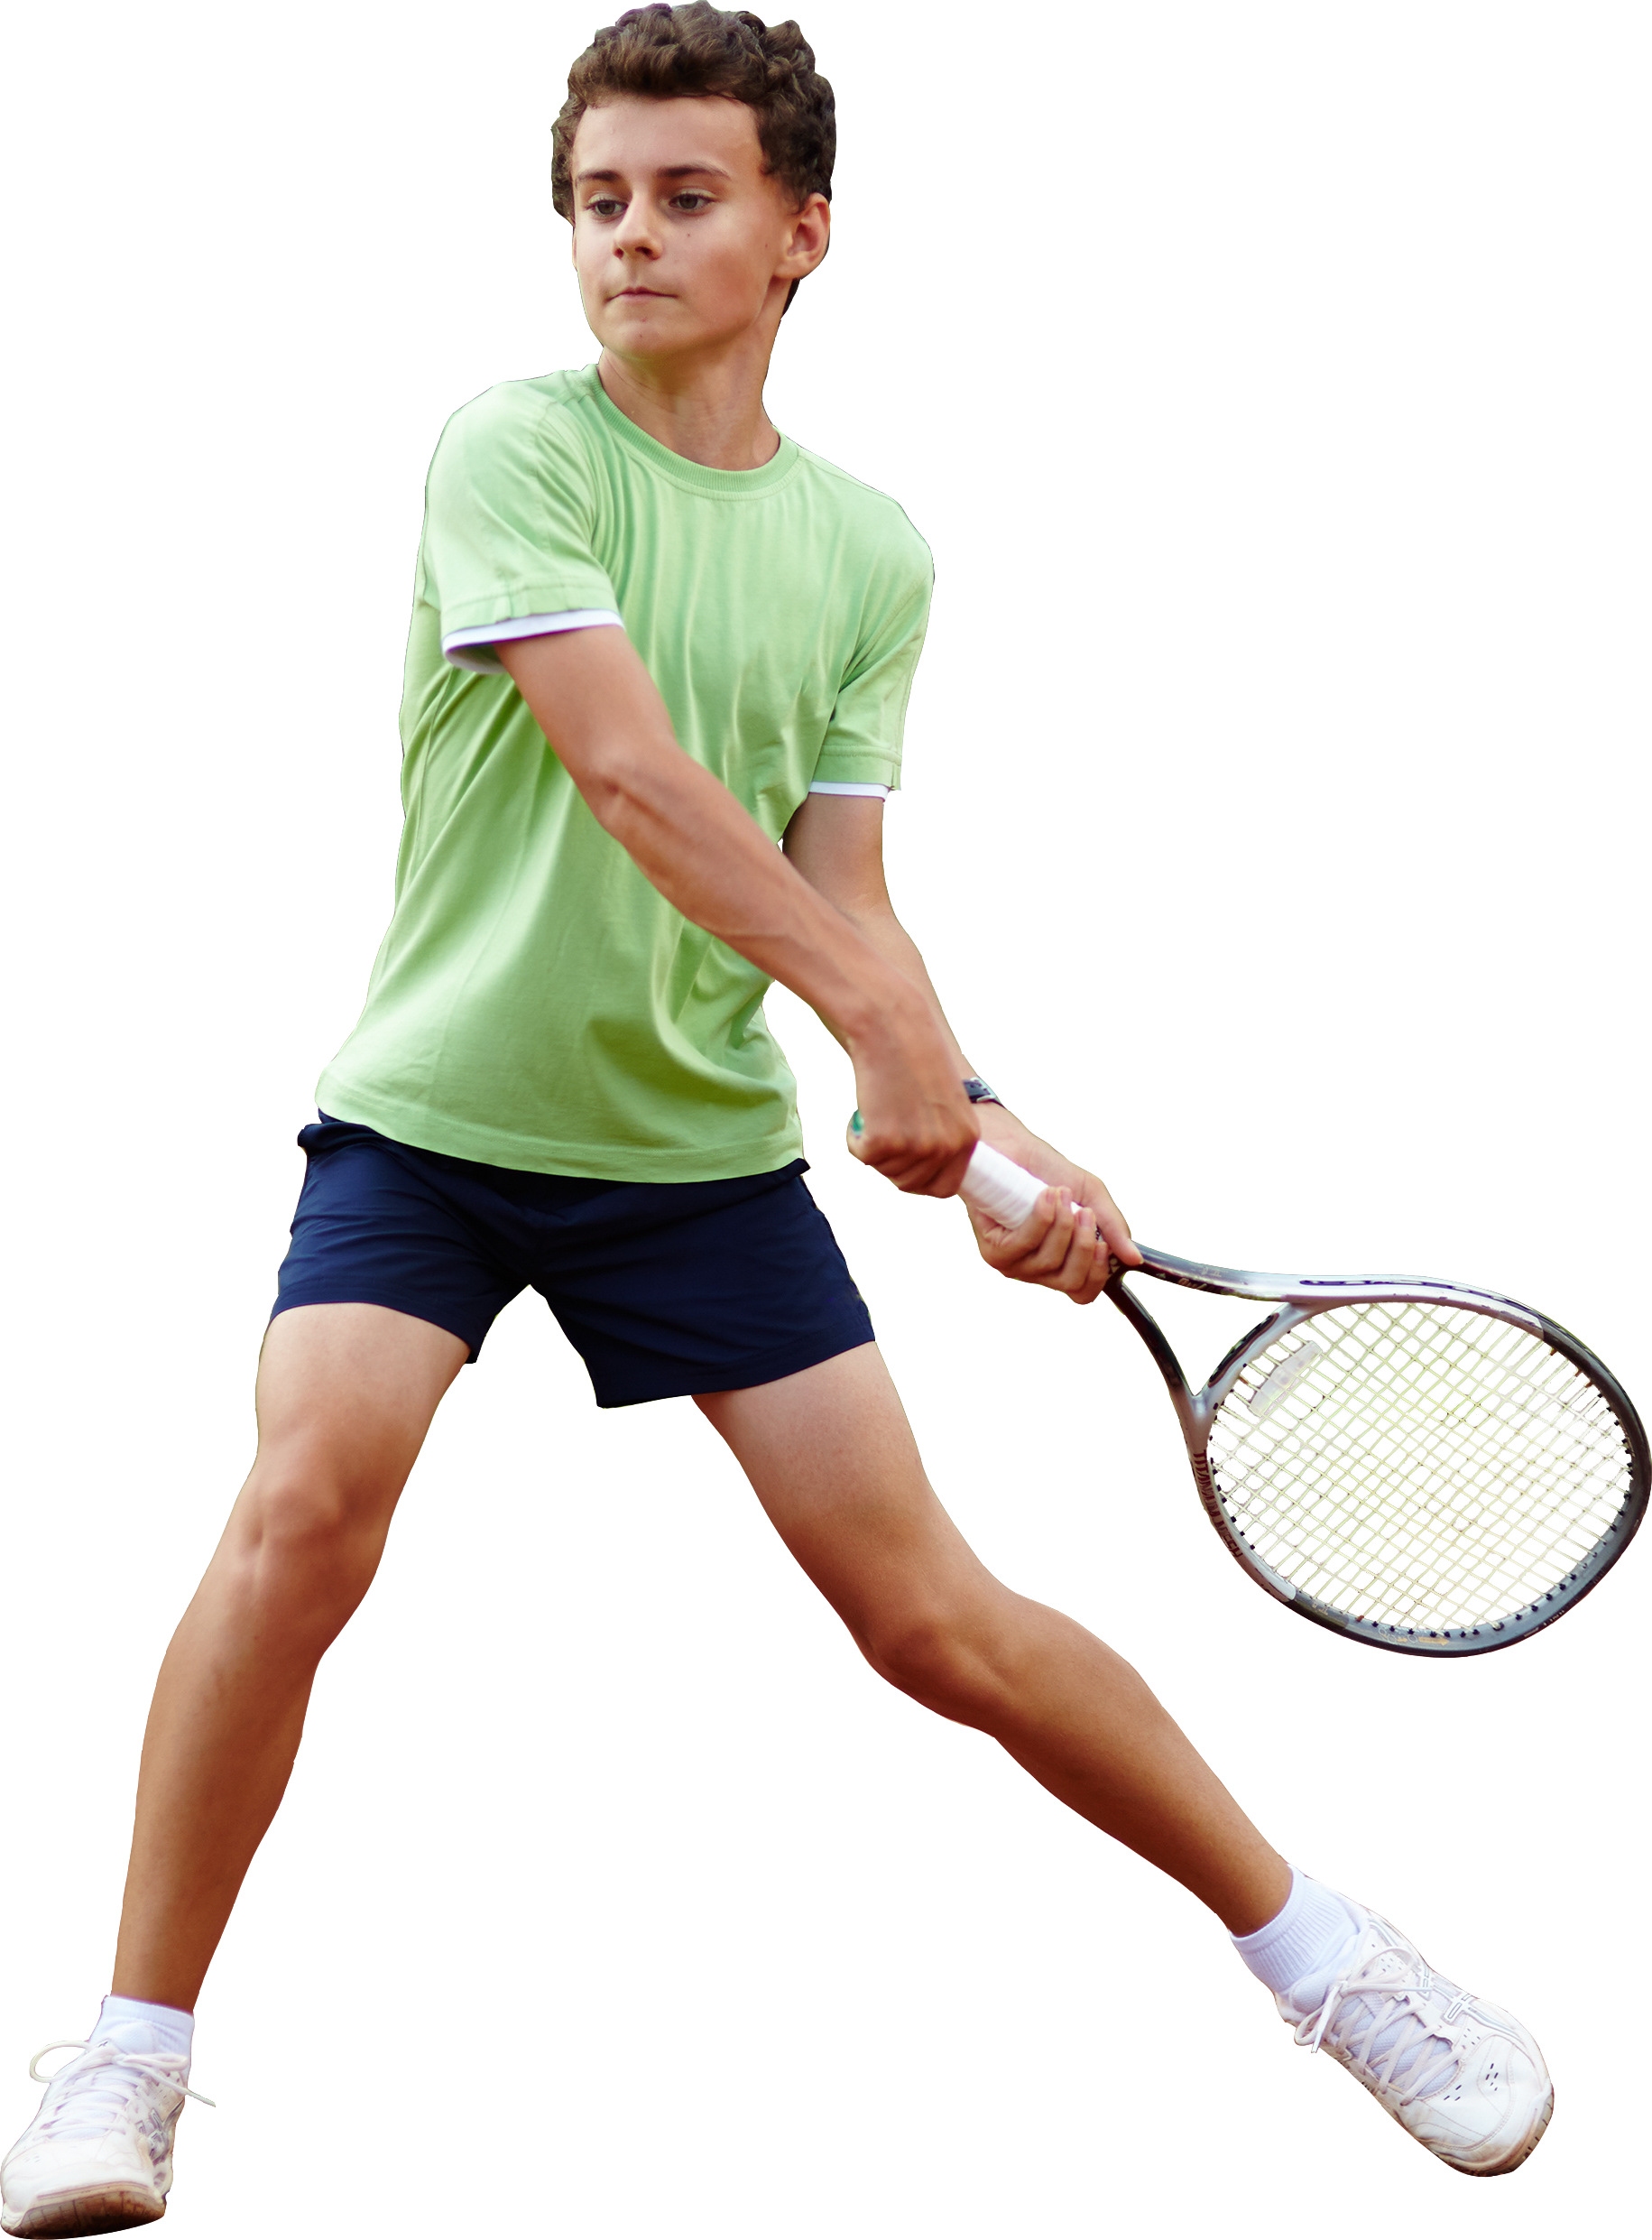 Tennis player boy PNG image - Tennis PNG